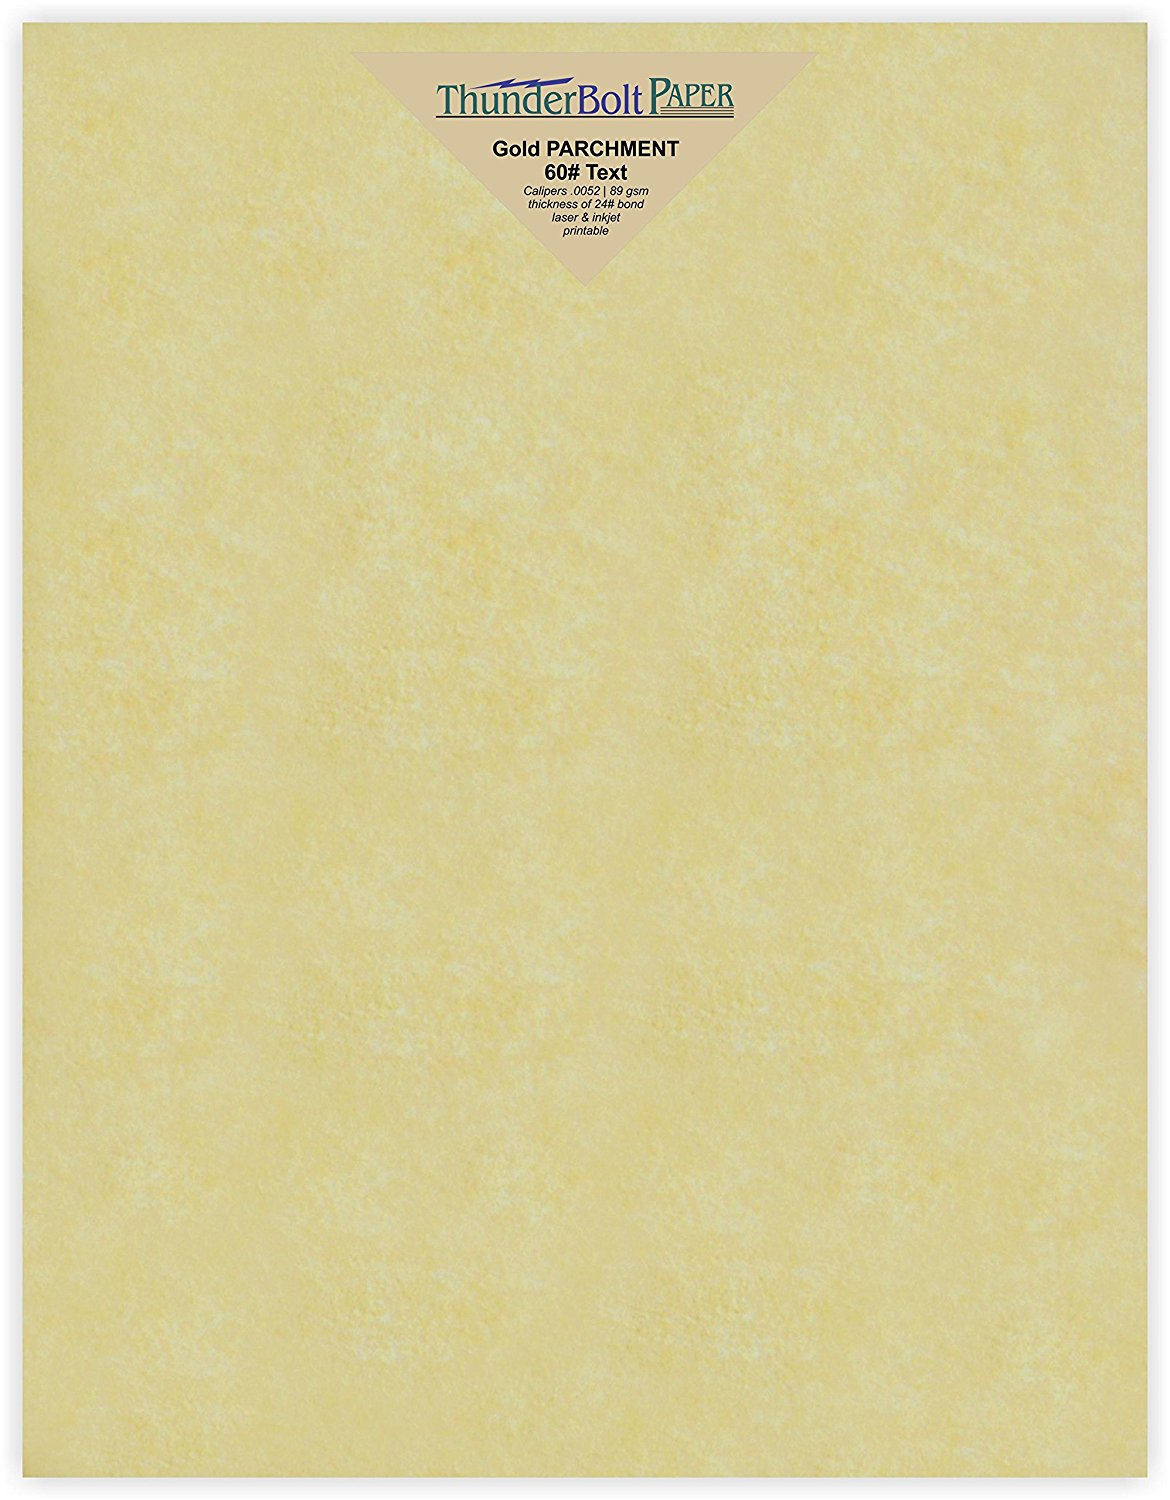 100 Light Green Parchment 60# Text Paper Sheets =24# Bond 8.5 X 14 inches Stationery Paper Colored Sheets Legal Size Vintage Colored Old Parchment Semblance 60 Pound is Not Card Weight